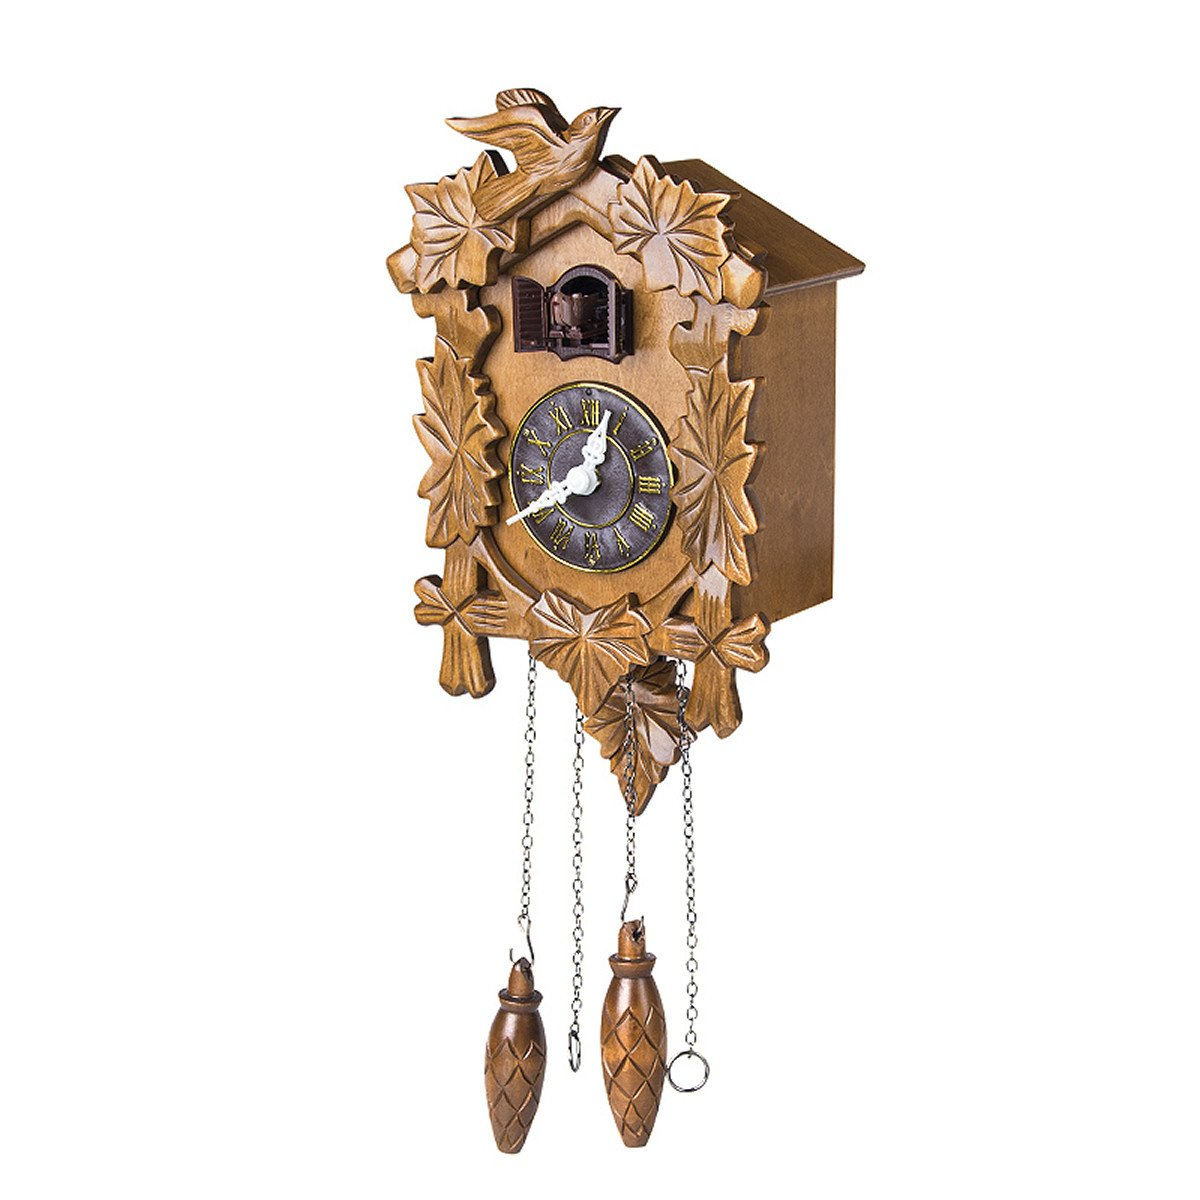 Kendal Handcrafted Wood Cuckoo Clock Shining Image SIMX025